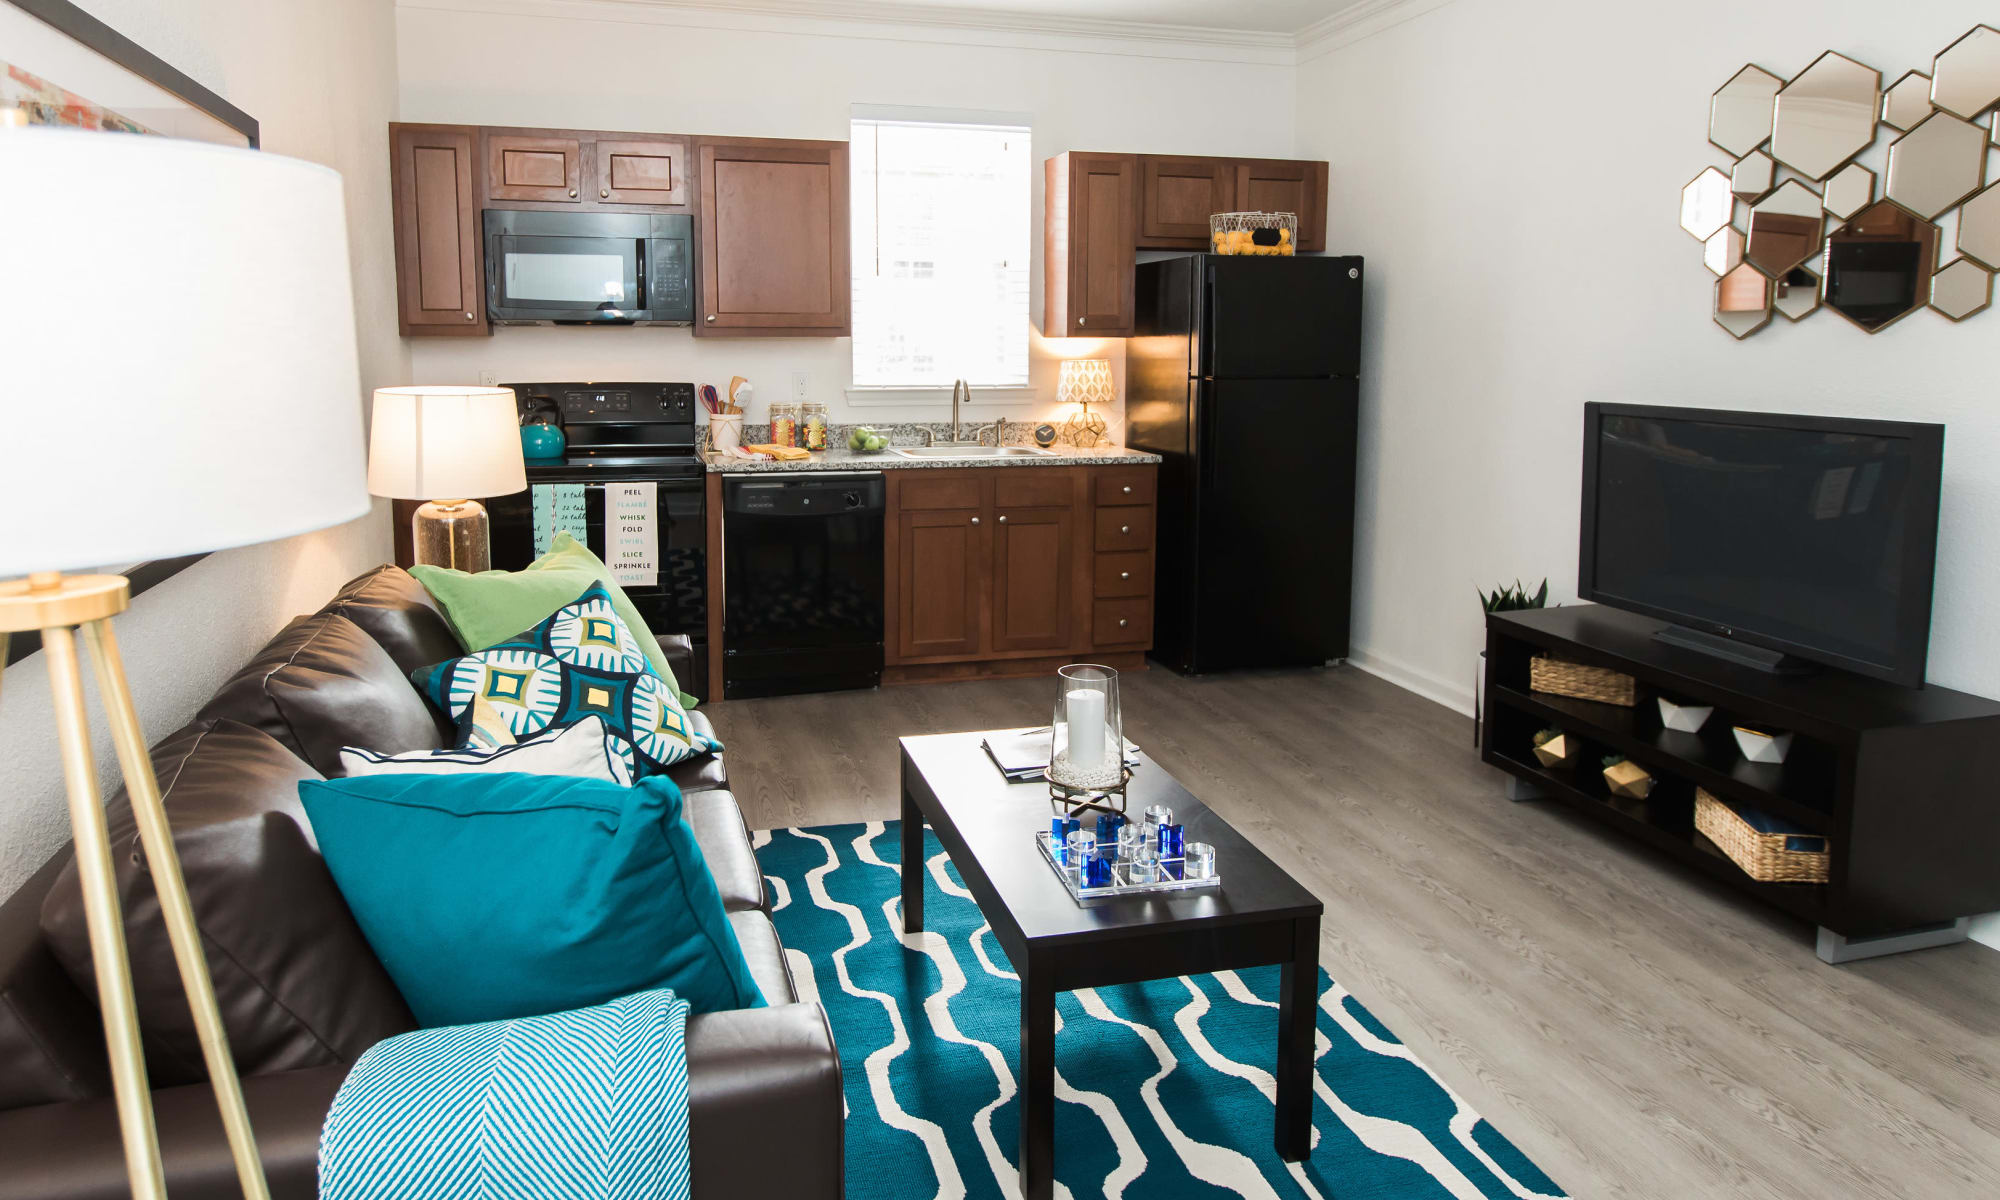 Off campus student housing by university of mississippi in - 3 bedroom apartments in oxford ms ...